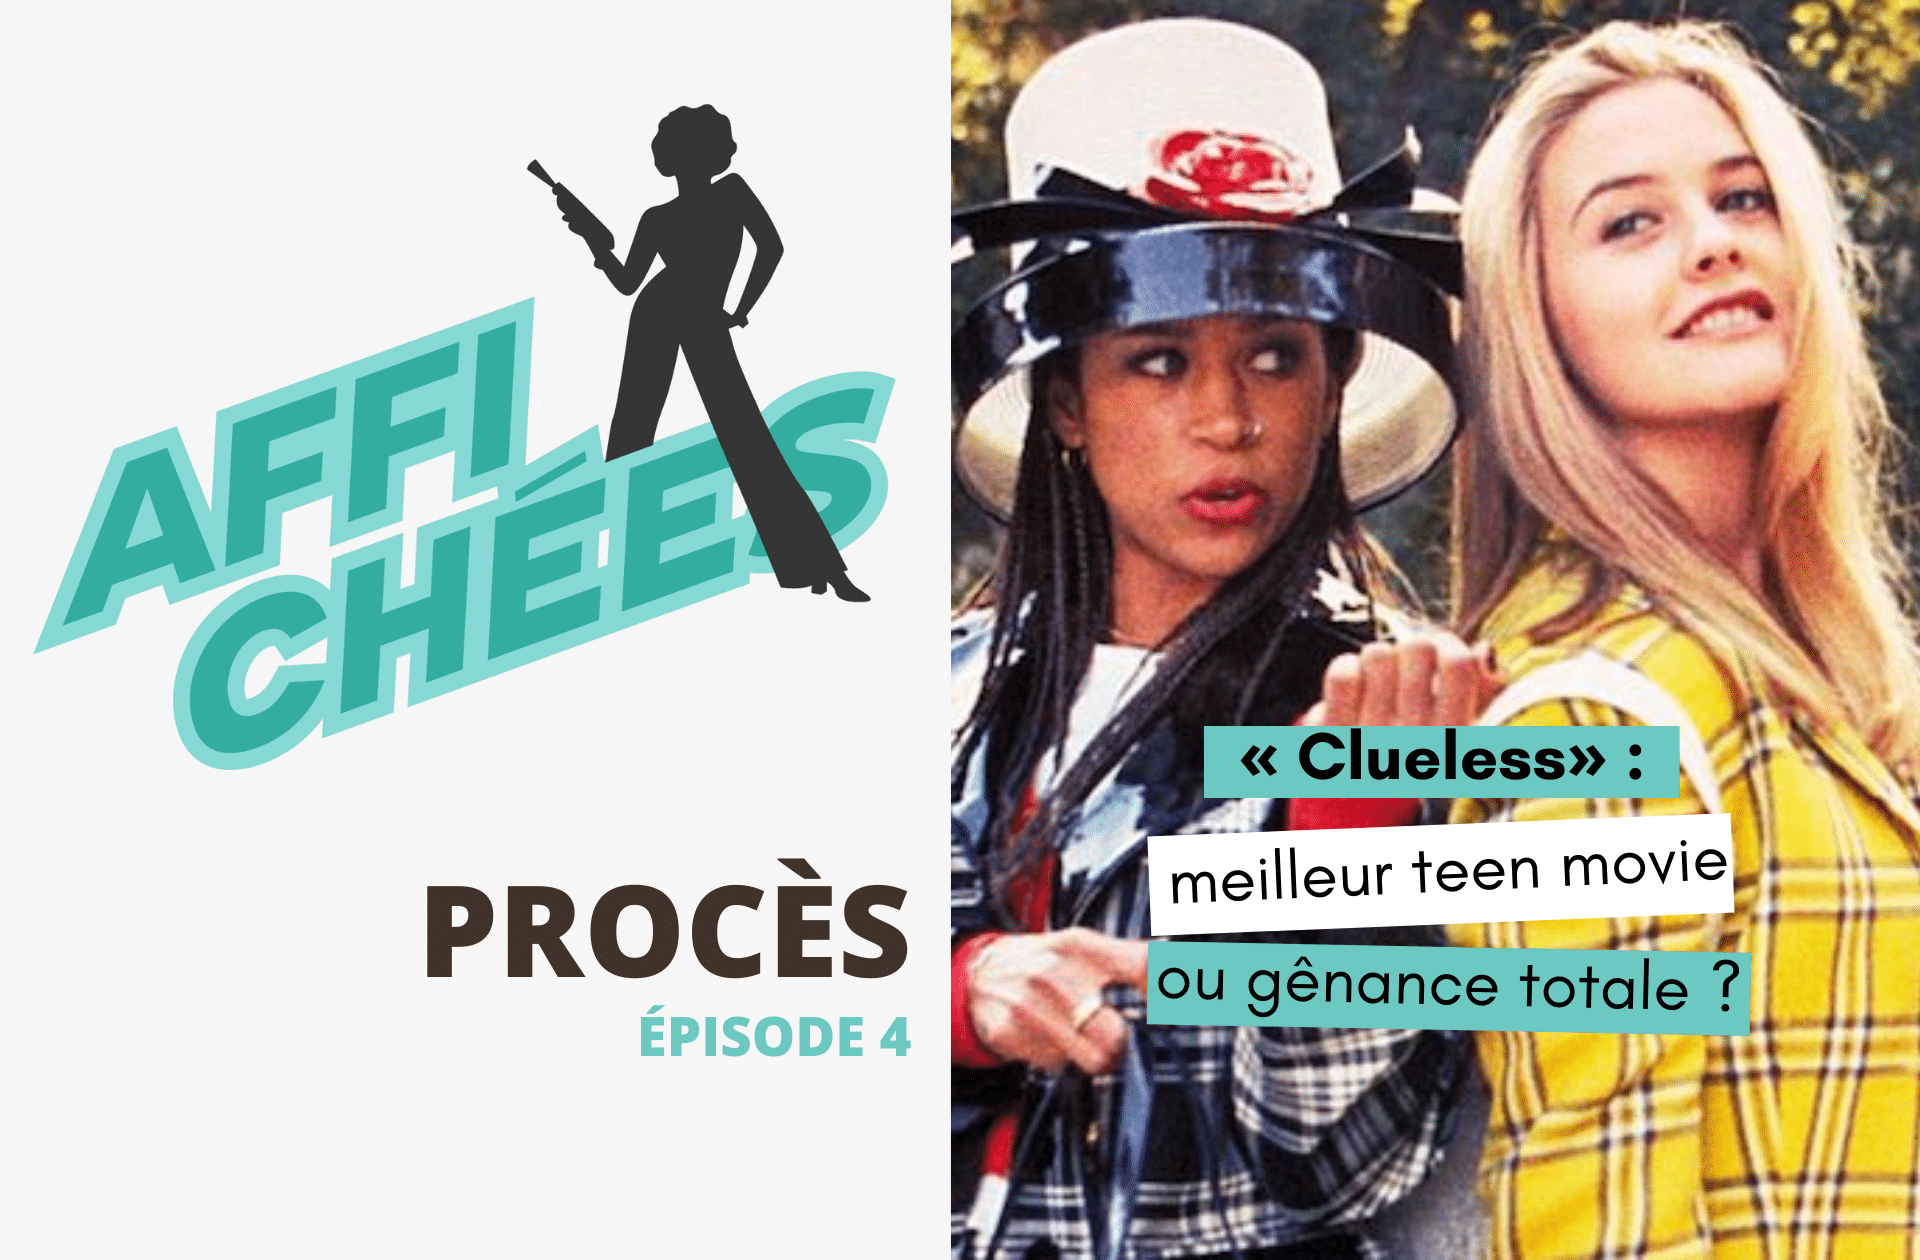 On fait le procès de « Clueless » : meilleur teen movie ou gênance totale ?